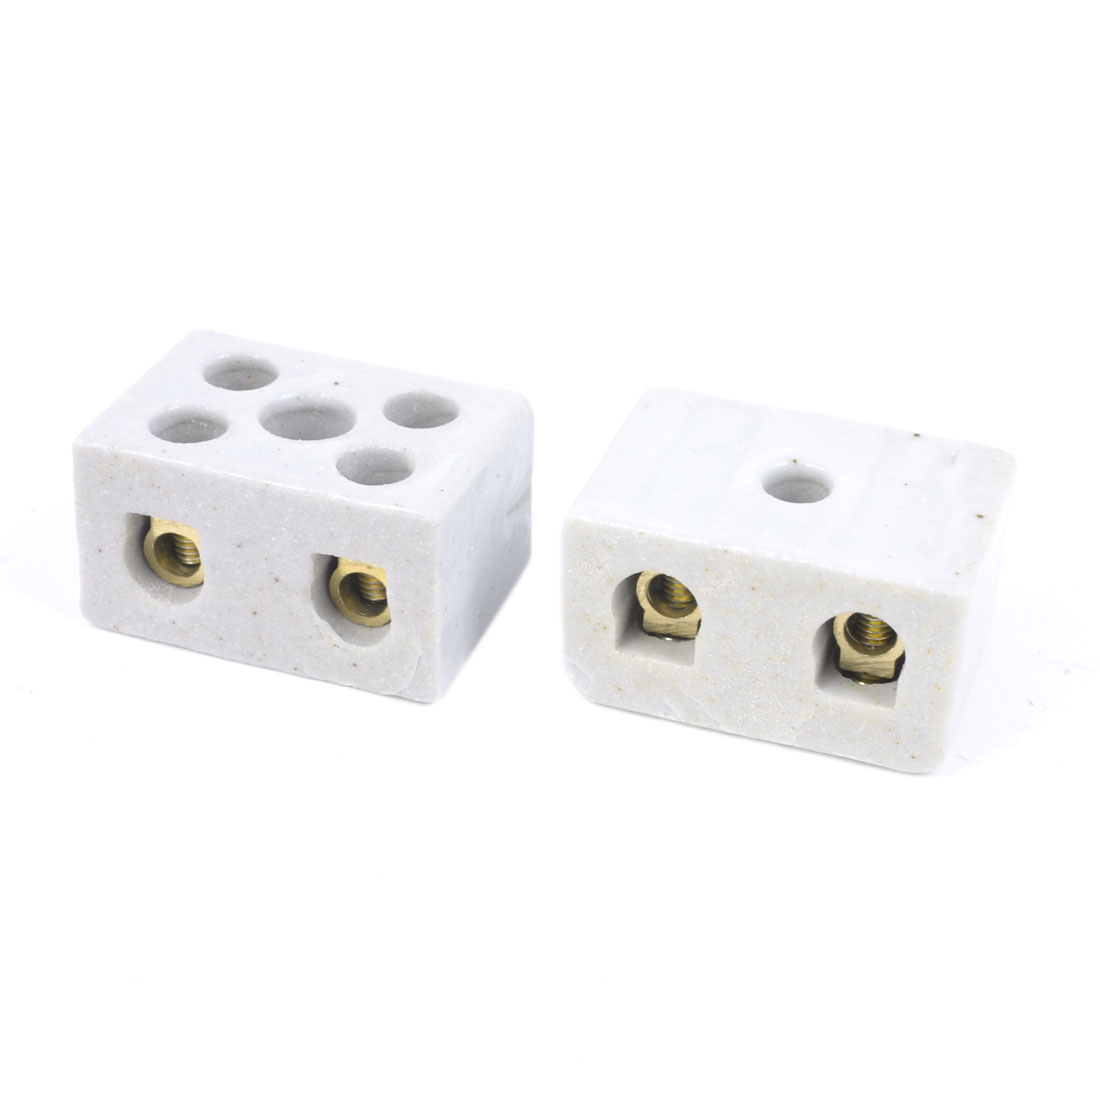 2pcs 15A 250V Insulation High Temp Ceramic Terminal Blocks 2W5H